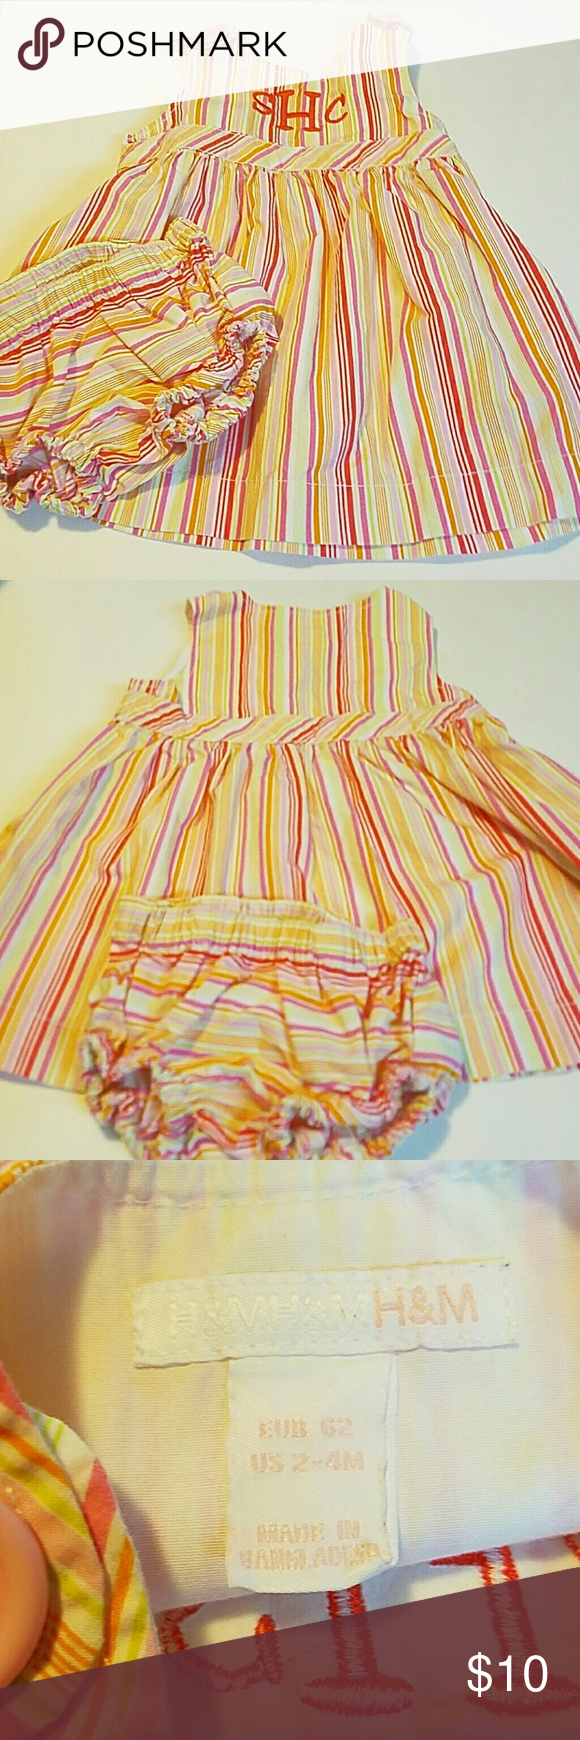 H&M Striped Baby 2-piece dress White with pink and orange stripes buy H&M embroidered in front in excellent condition H&M Dresses Casual